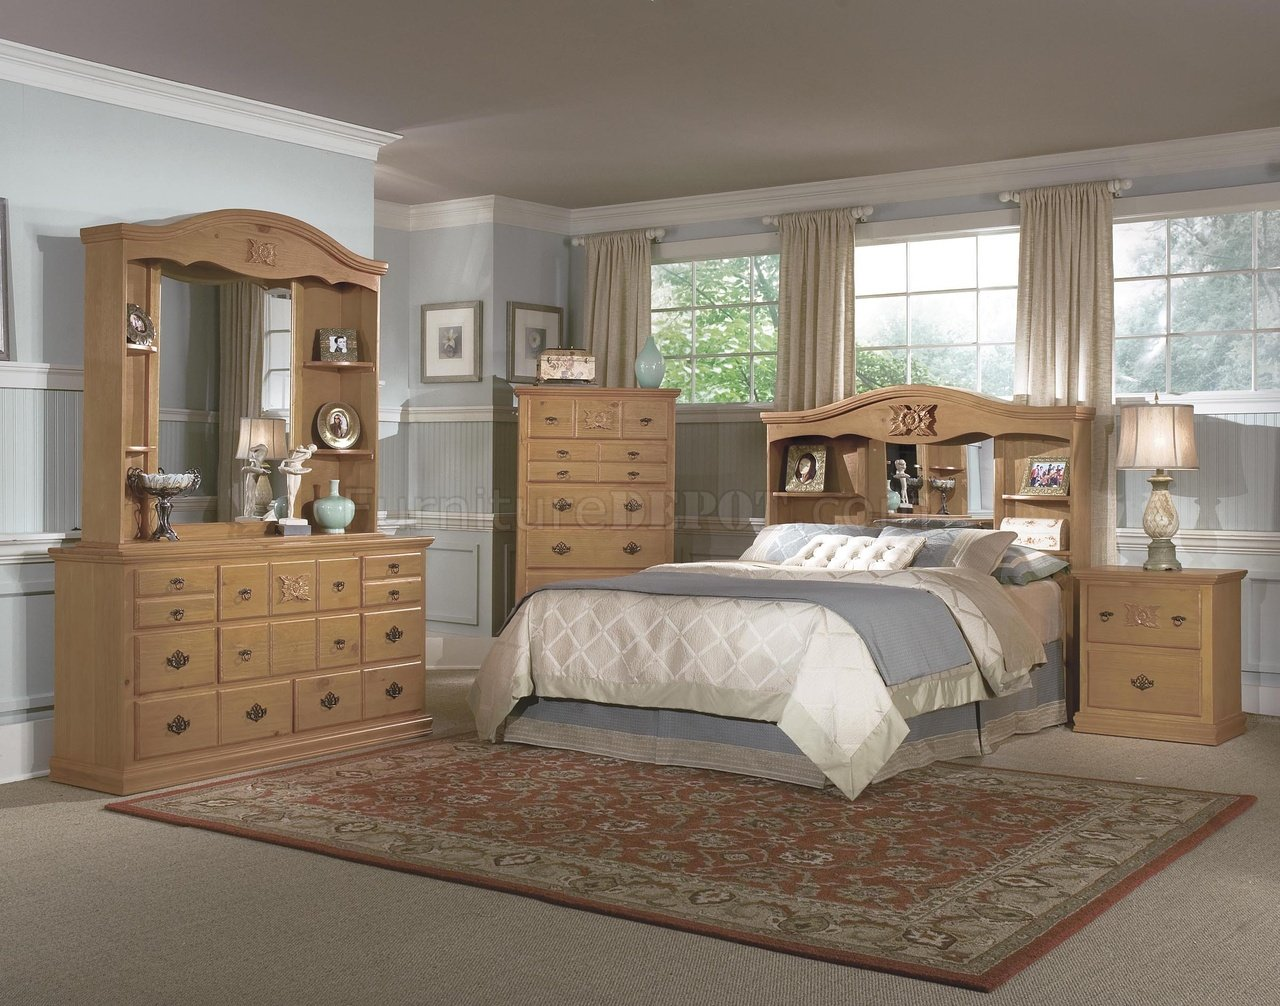 Pine All Wood Country Style Bedroom wHandCarved Wood Accents